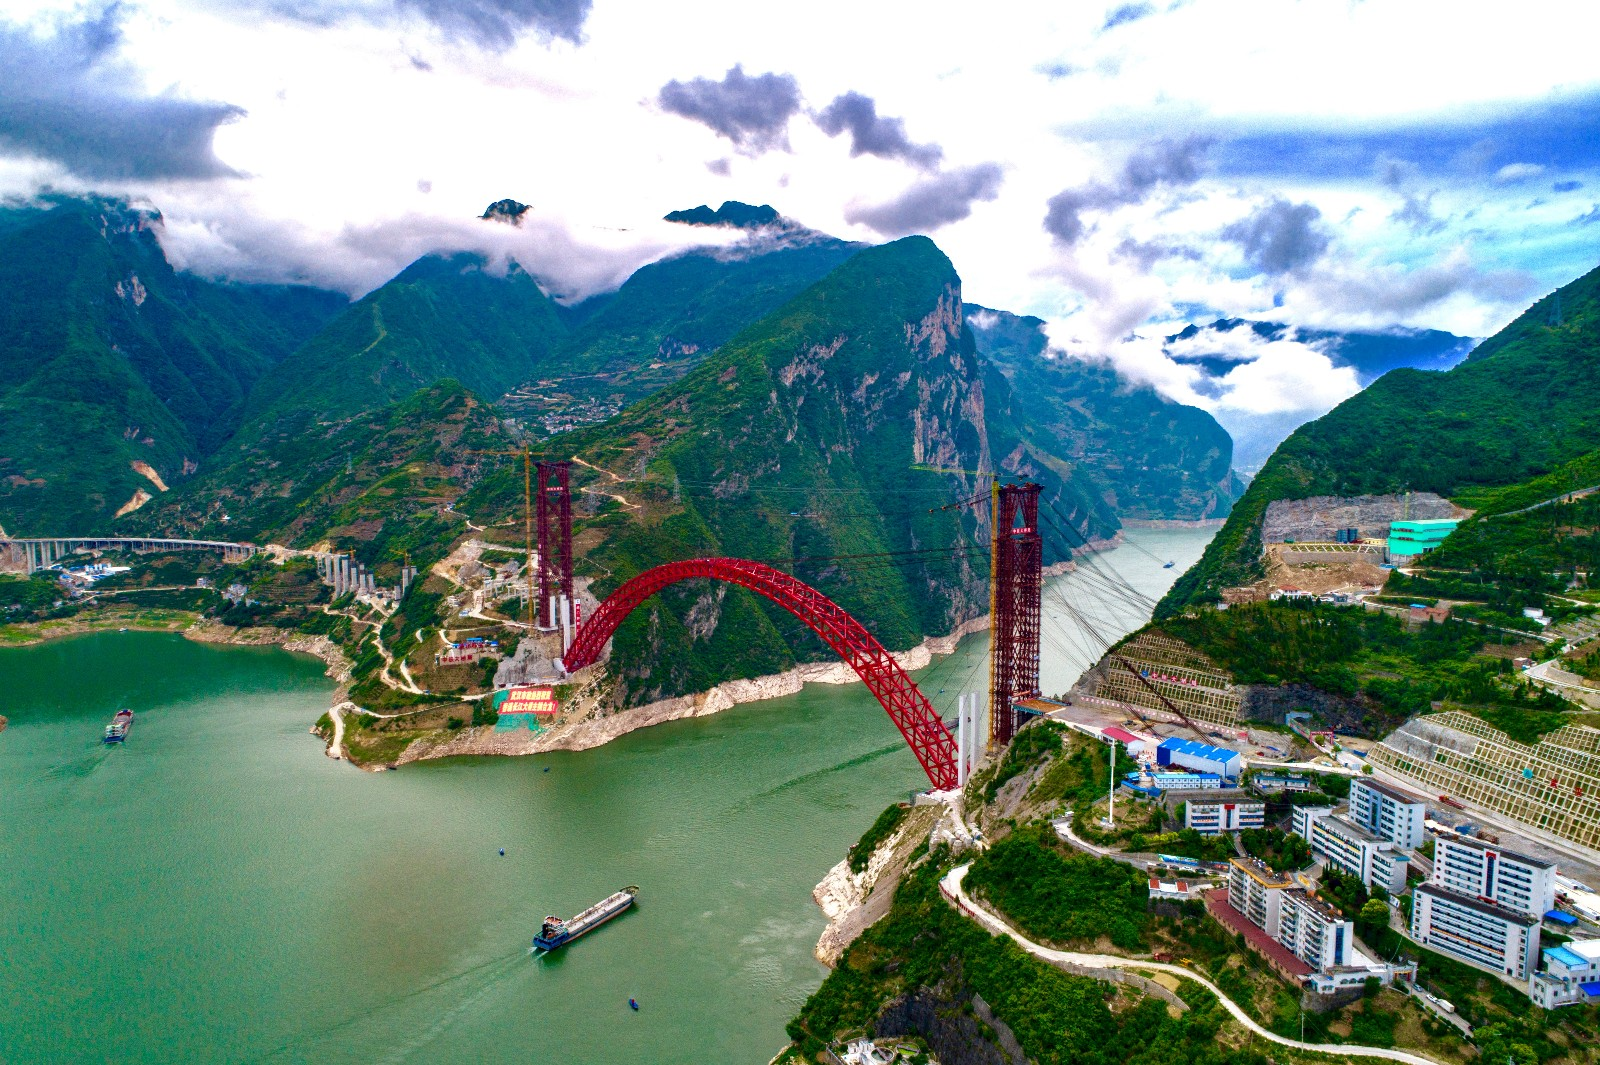 Hubei's Xiangxi bridge connects arch, expected to be operational by end of 2019